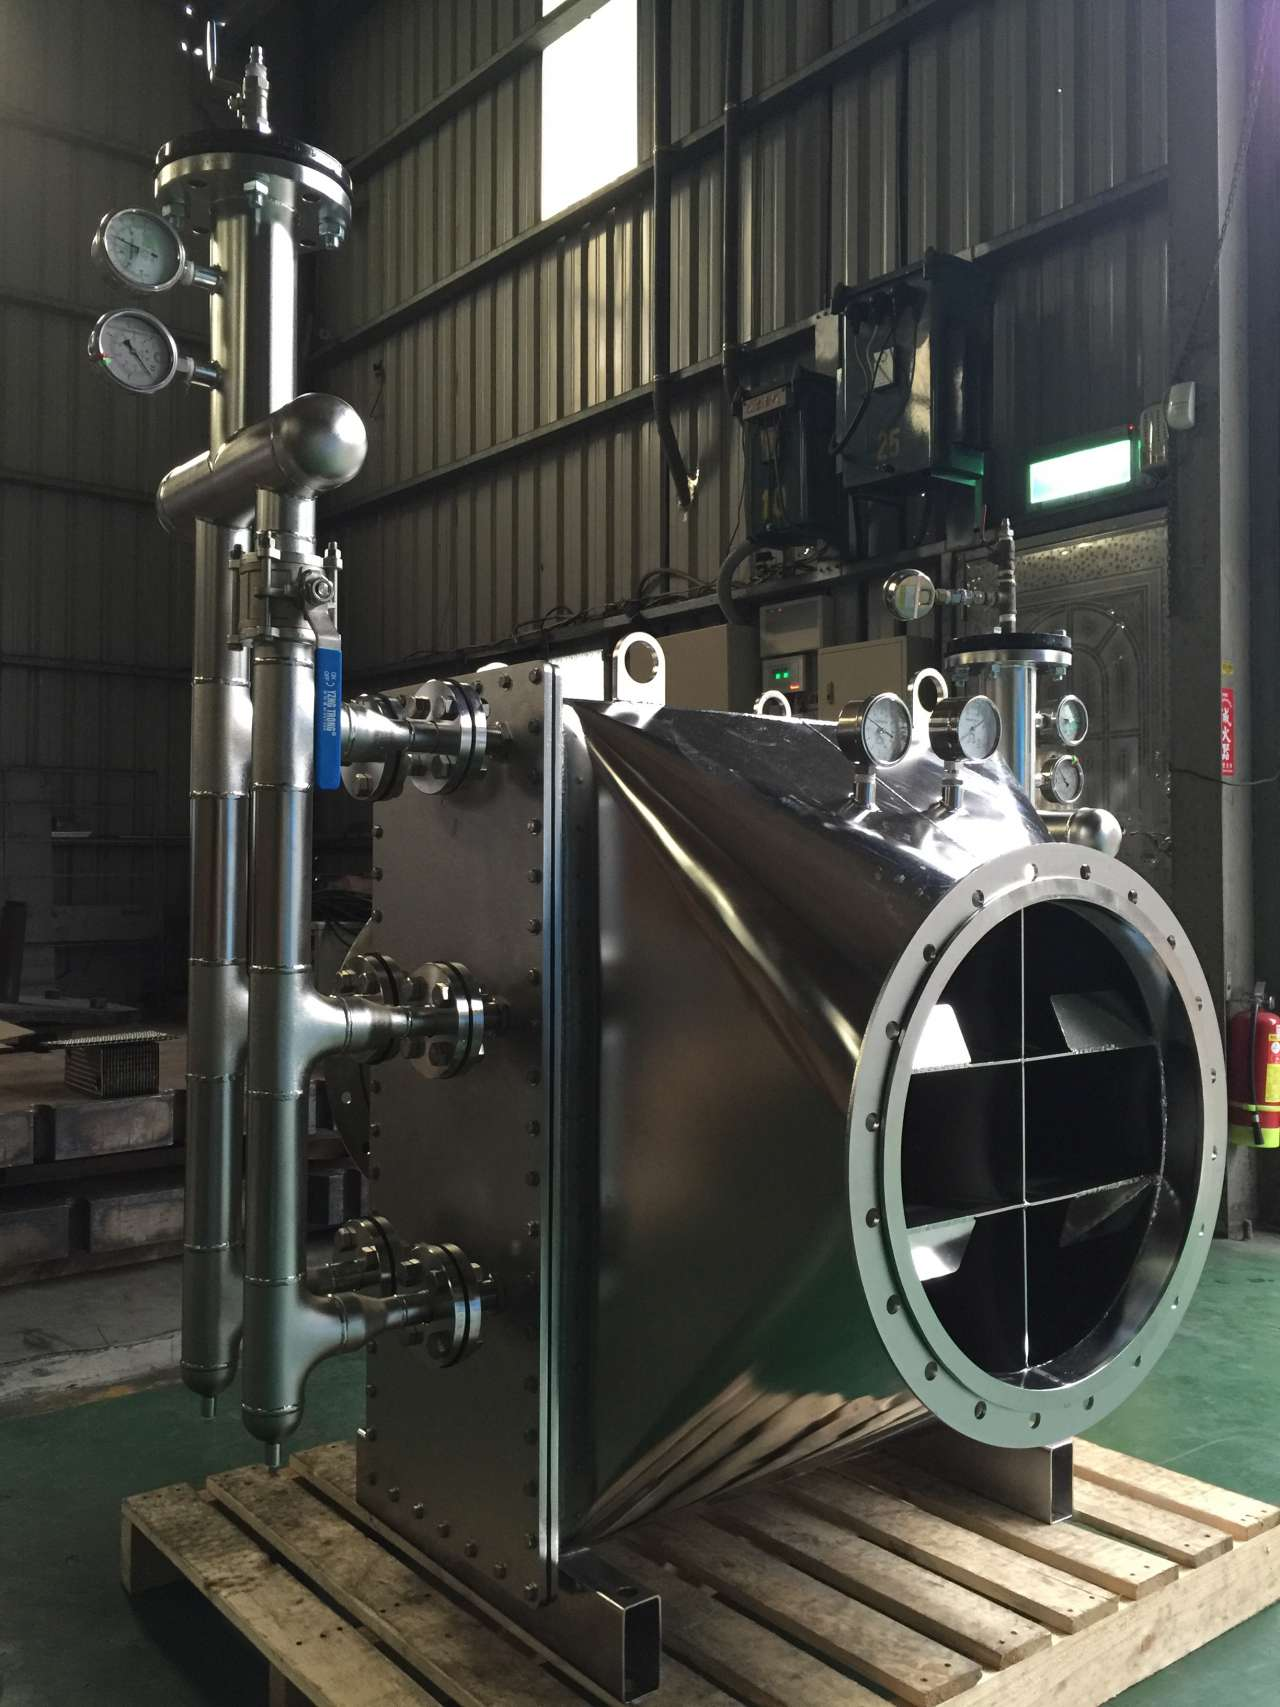 Stainless steel gas / liquid heat exchanger